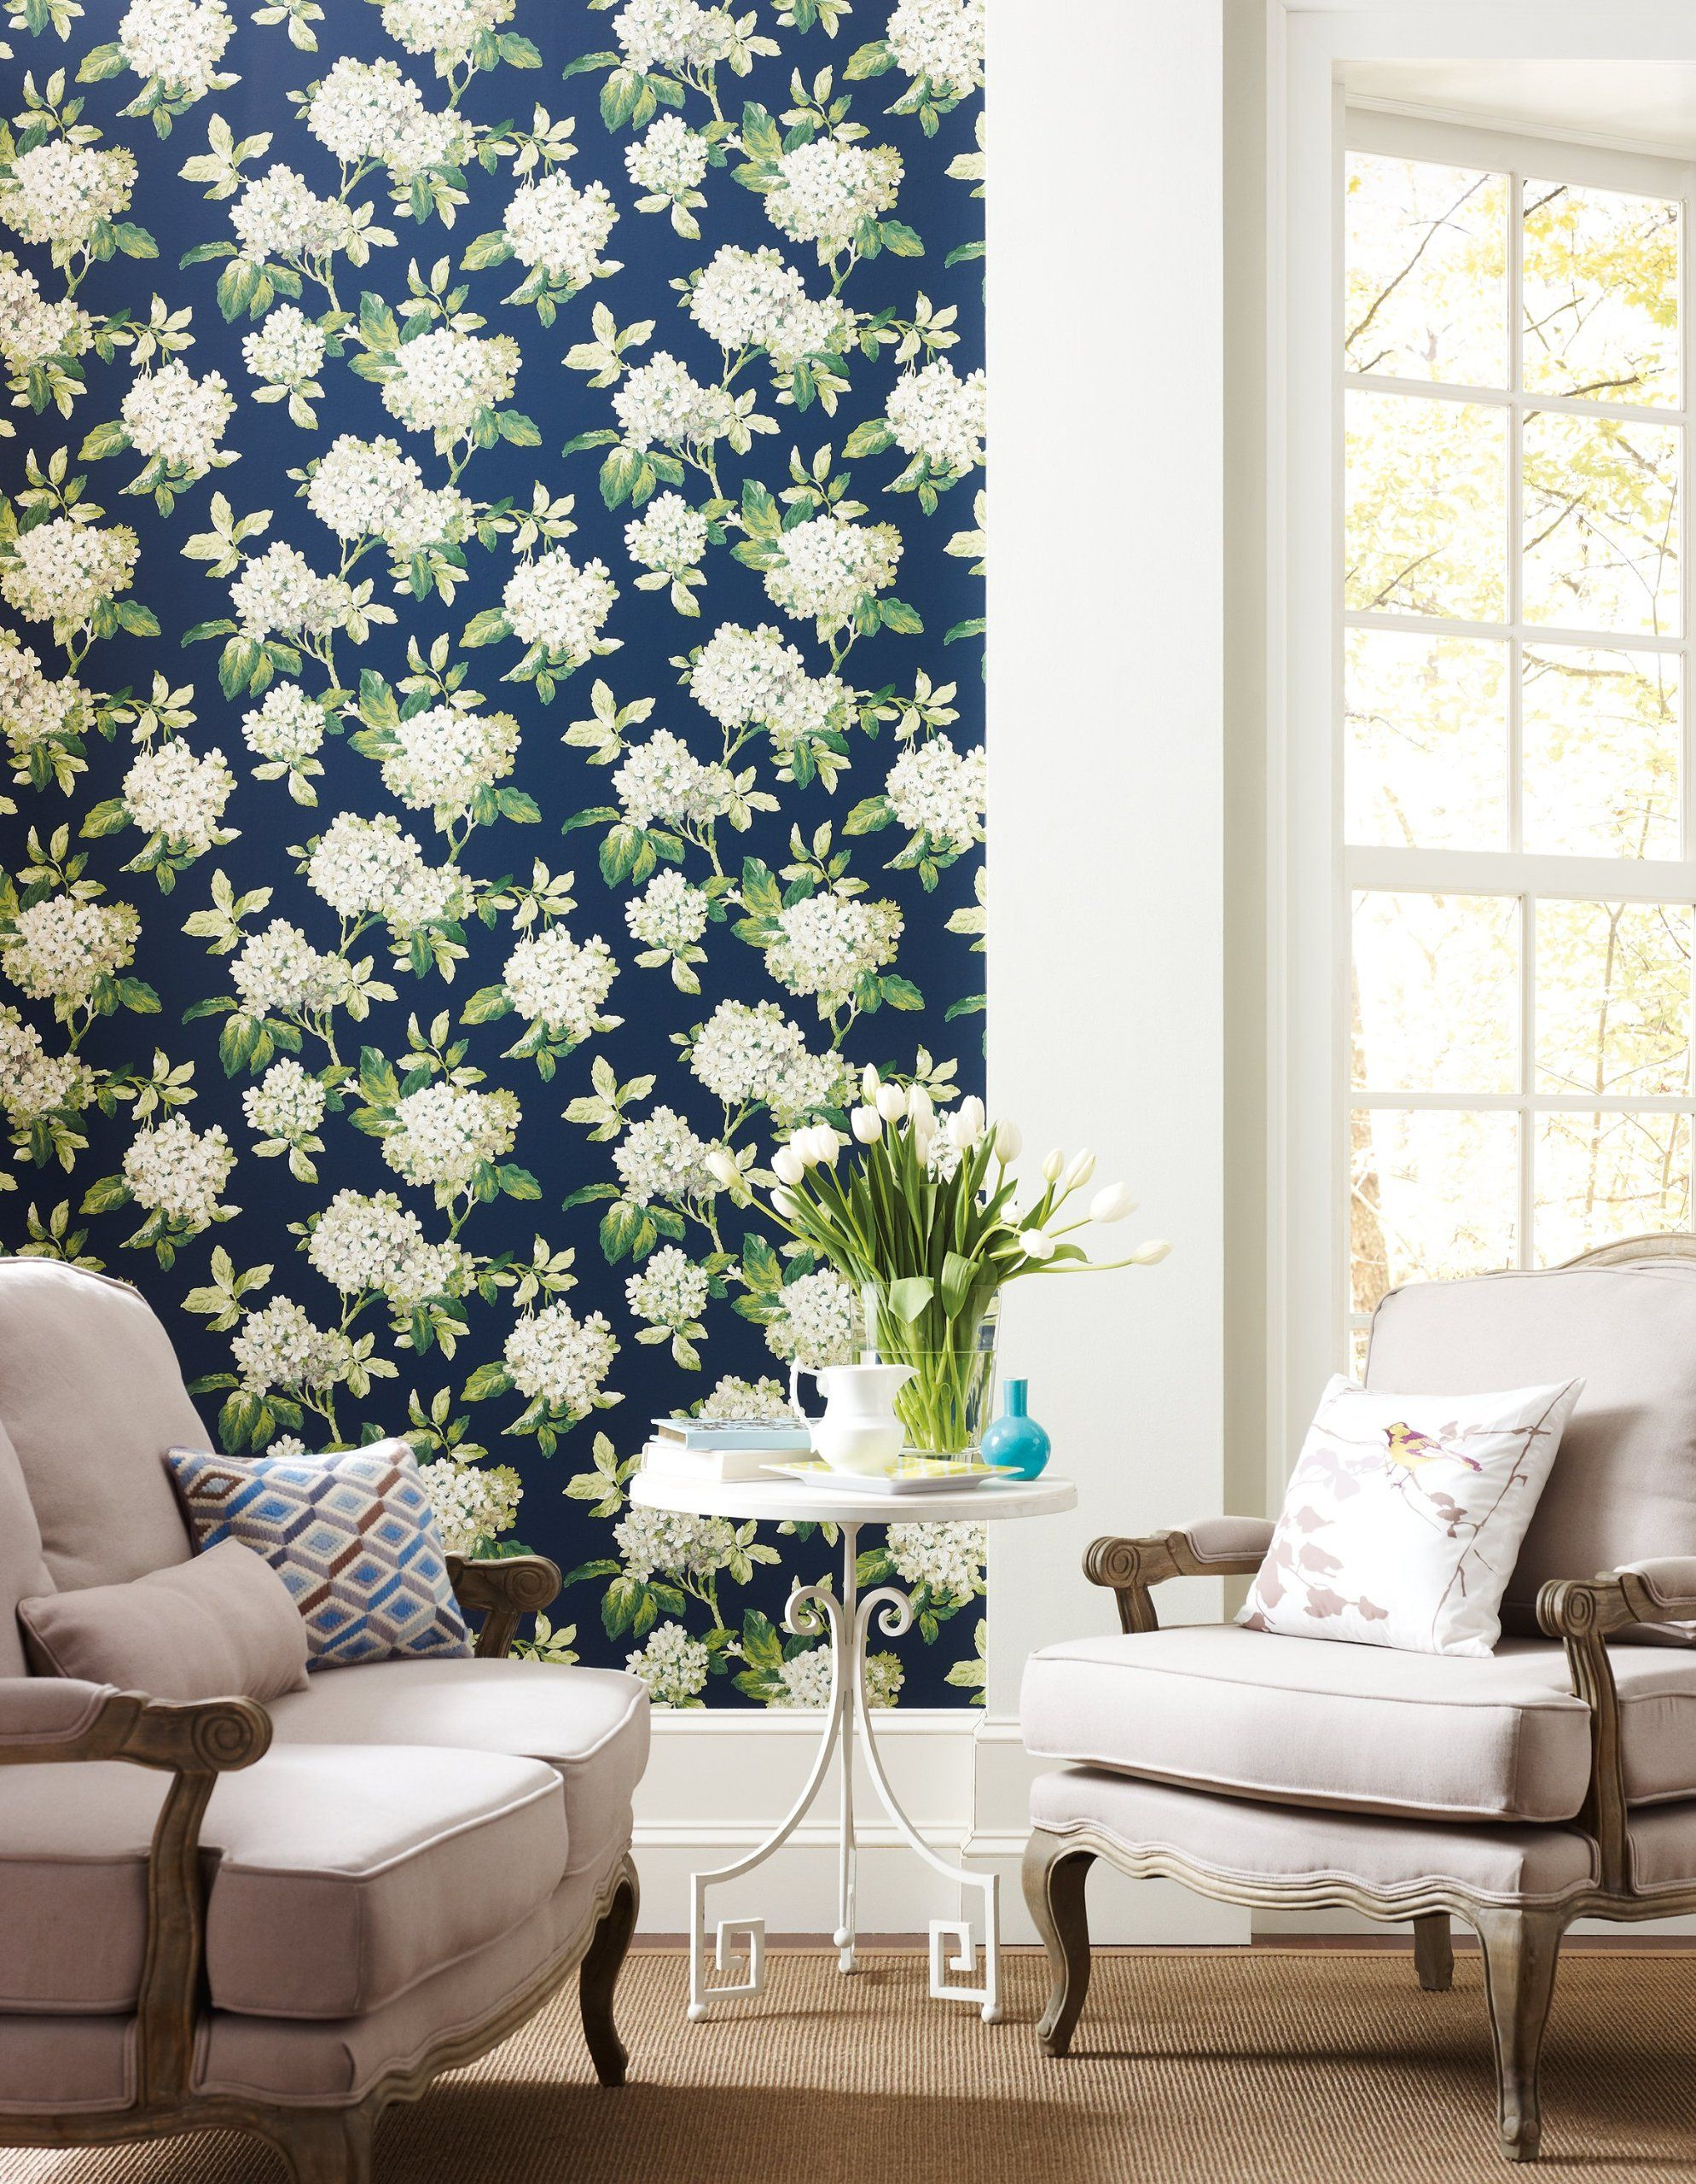 York Wallcoverings Ashford House Blooms Hydrangea Wallpaper